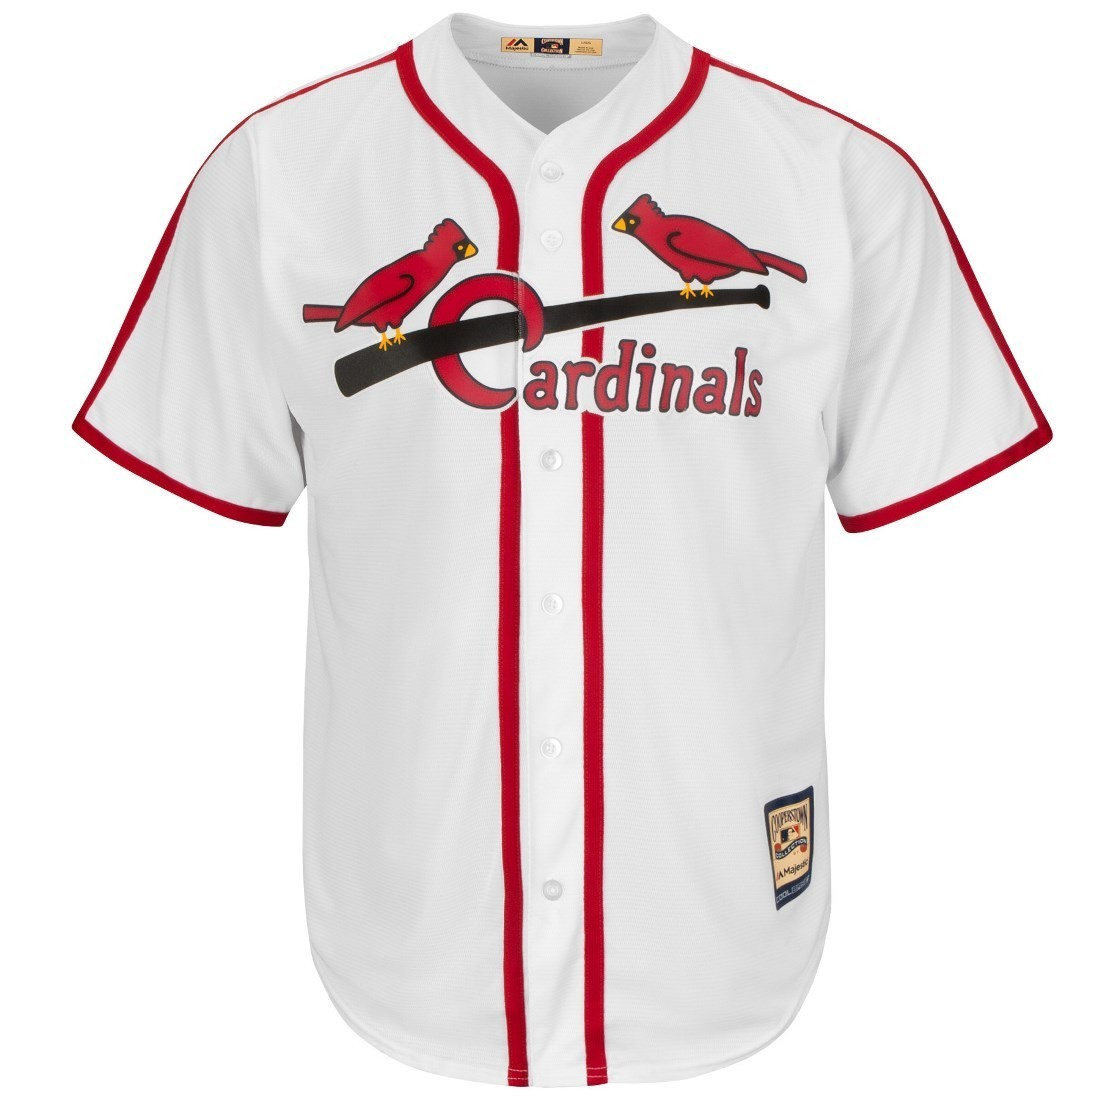 St. Louis Cardinals Cooperstown Majestic Cool Base Retro